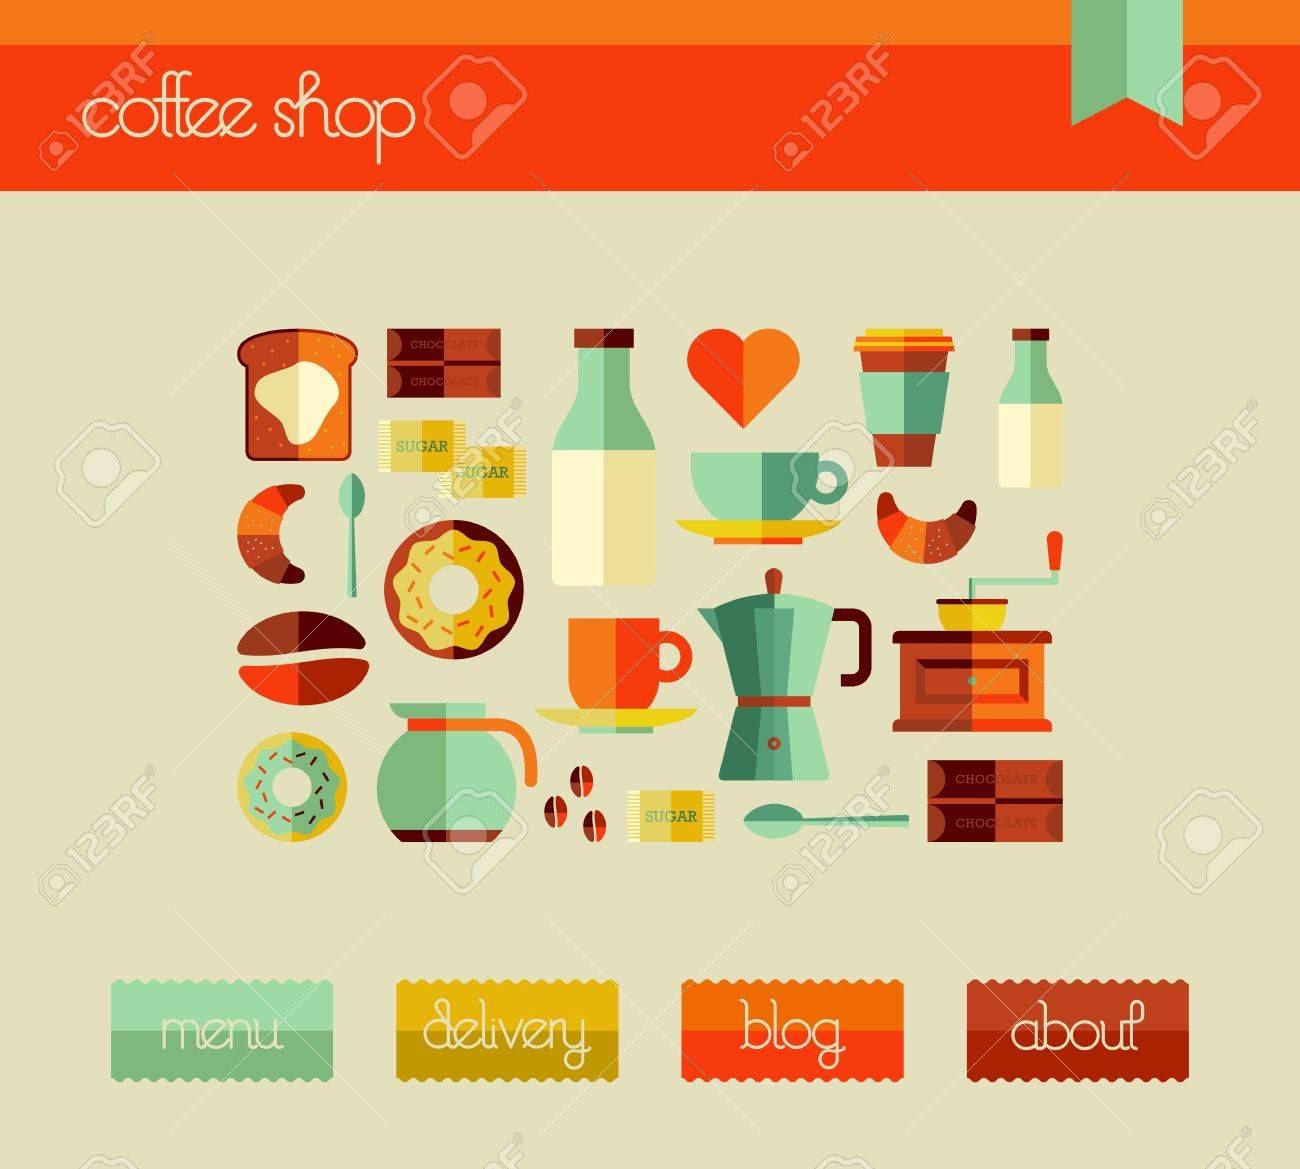 Cafe graphic user interfase for web and mobile devices with icon set. Vector file layered for easy manipulation and custom coloring. Stock Vector - 20602738